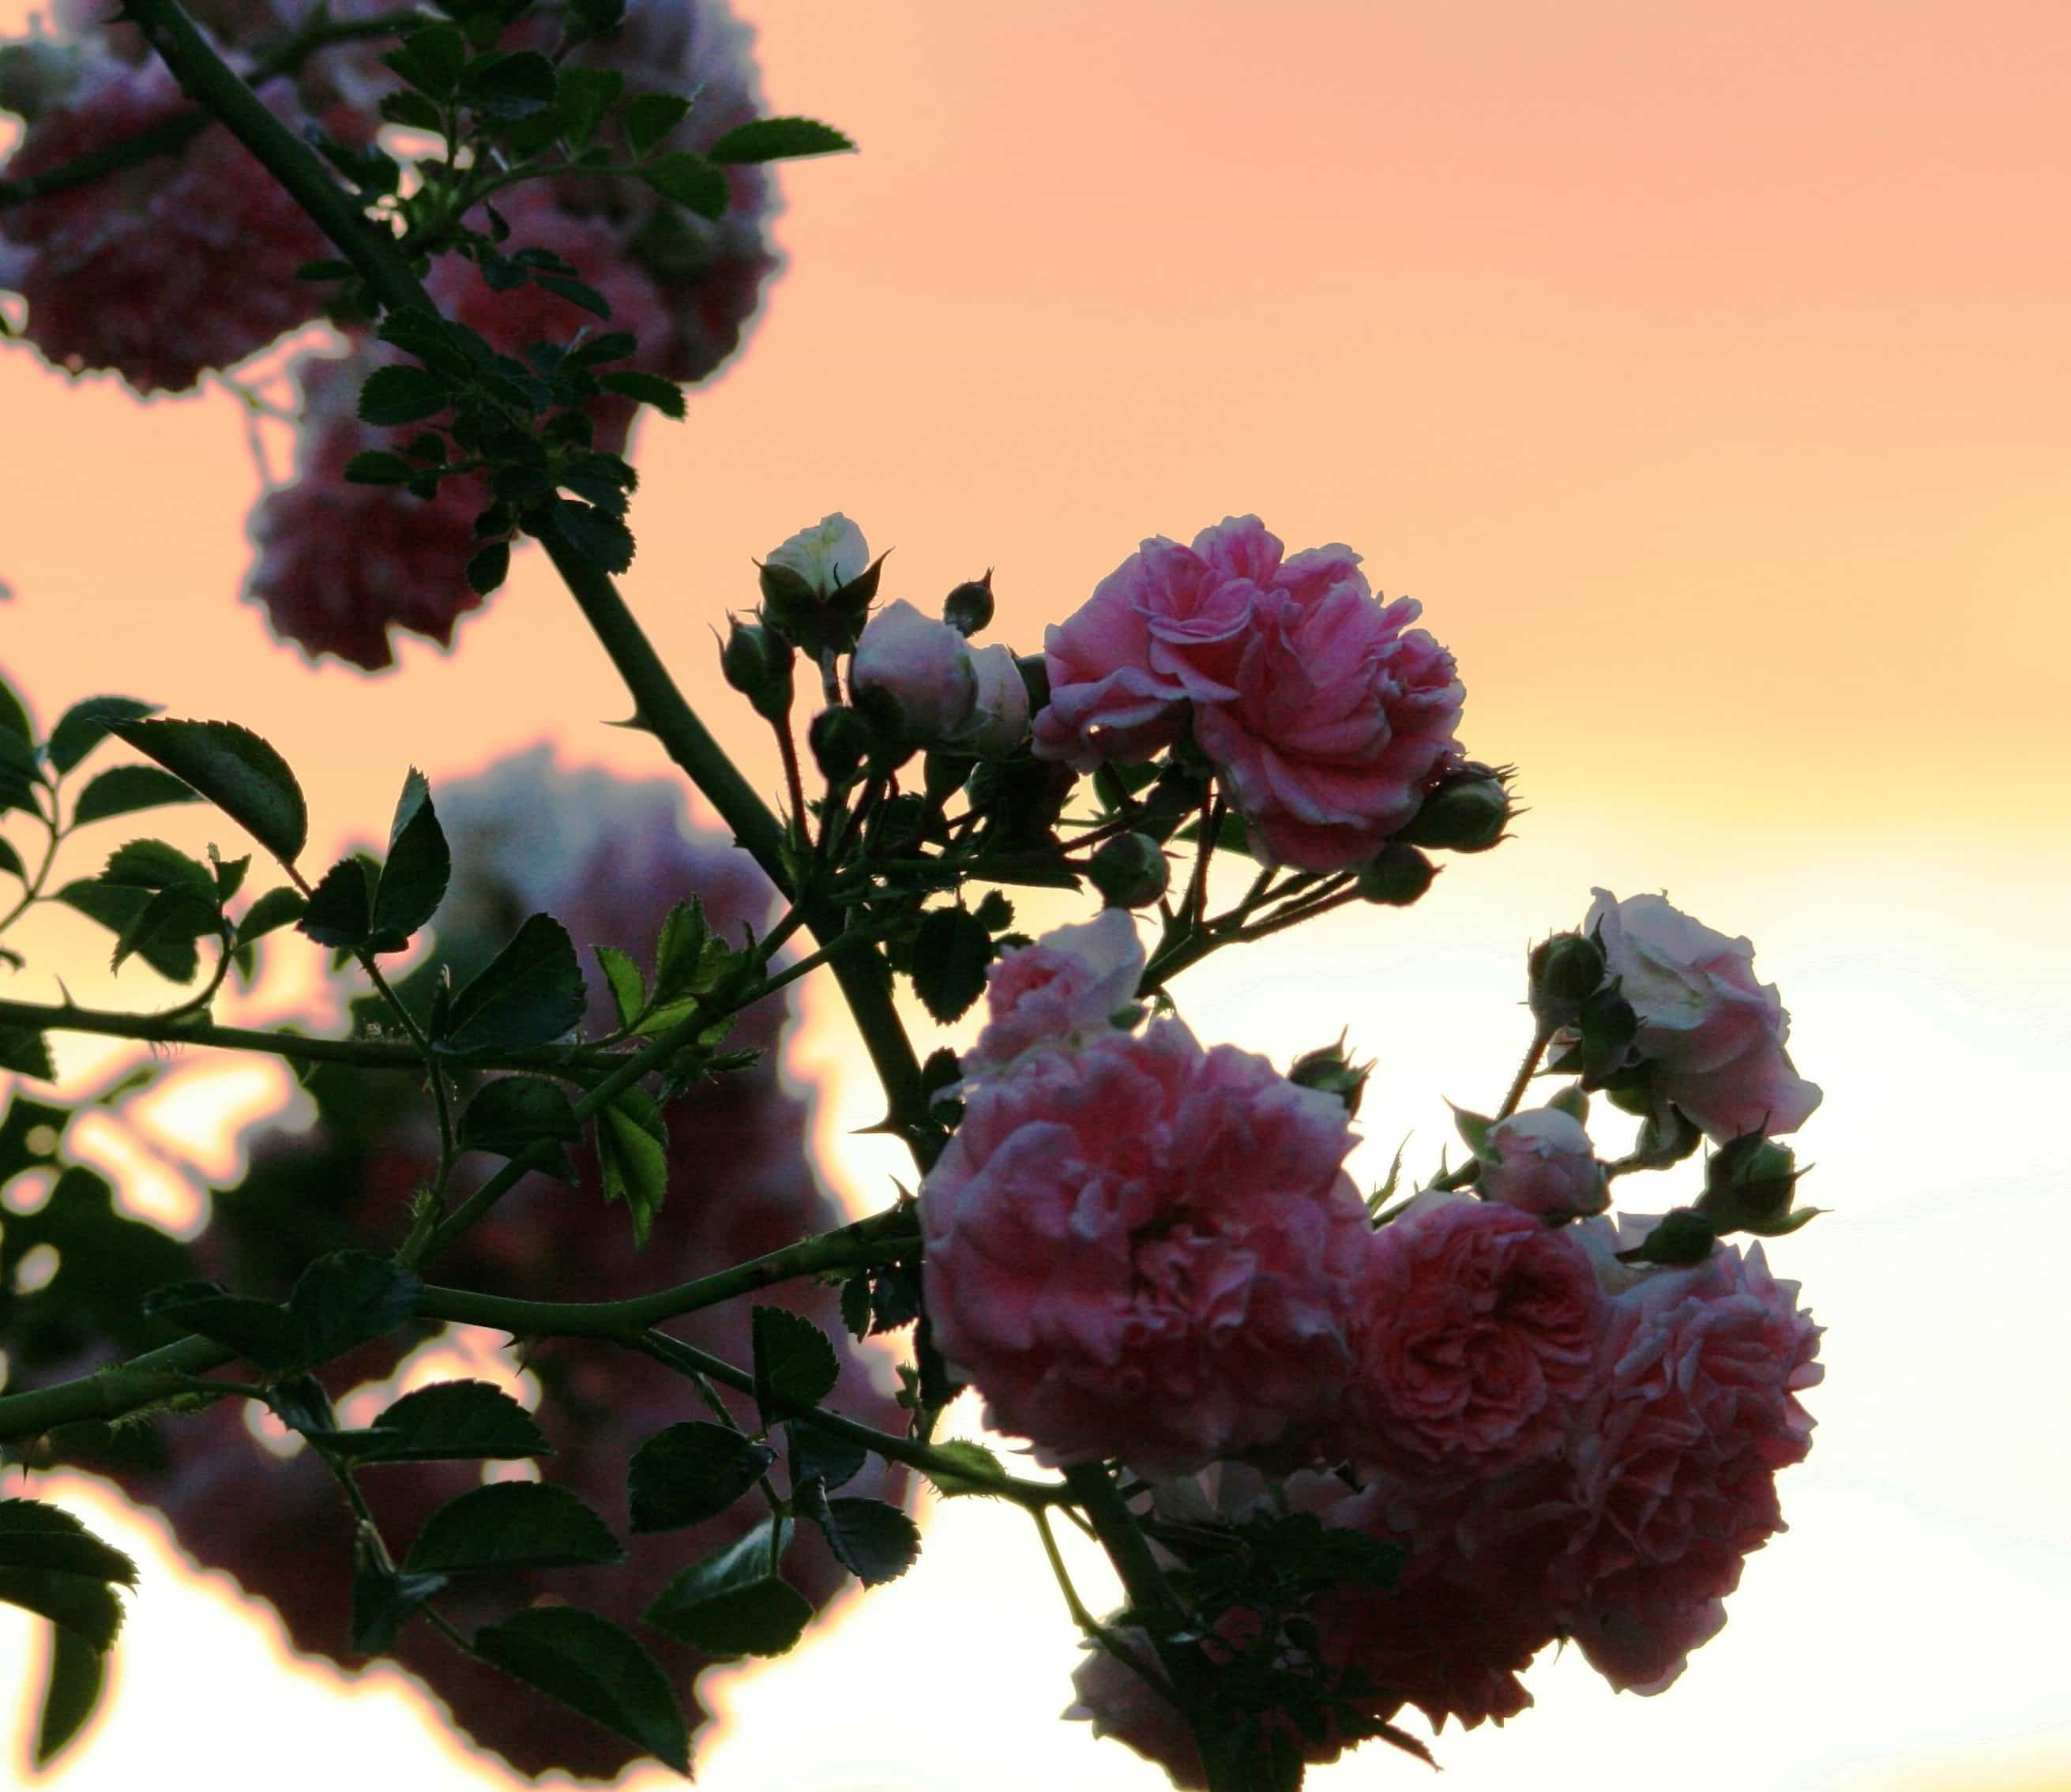 Free Picture: Petal, Flower, Rose, Branch, Garden, Nature